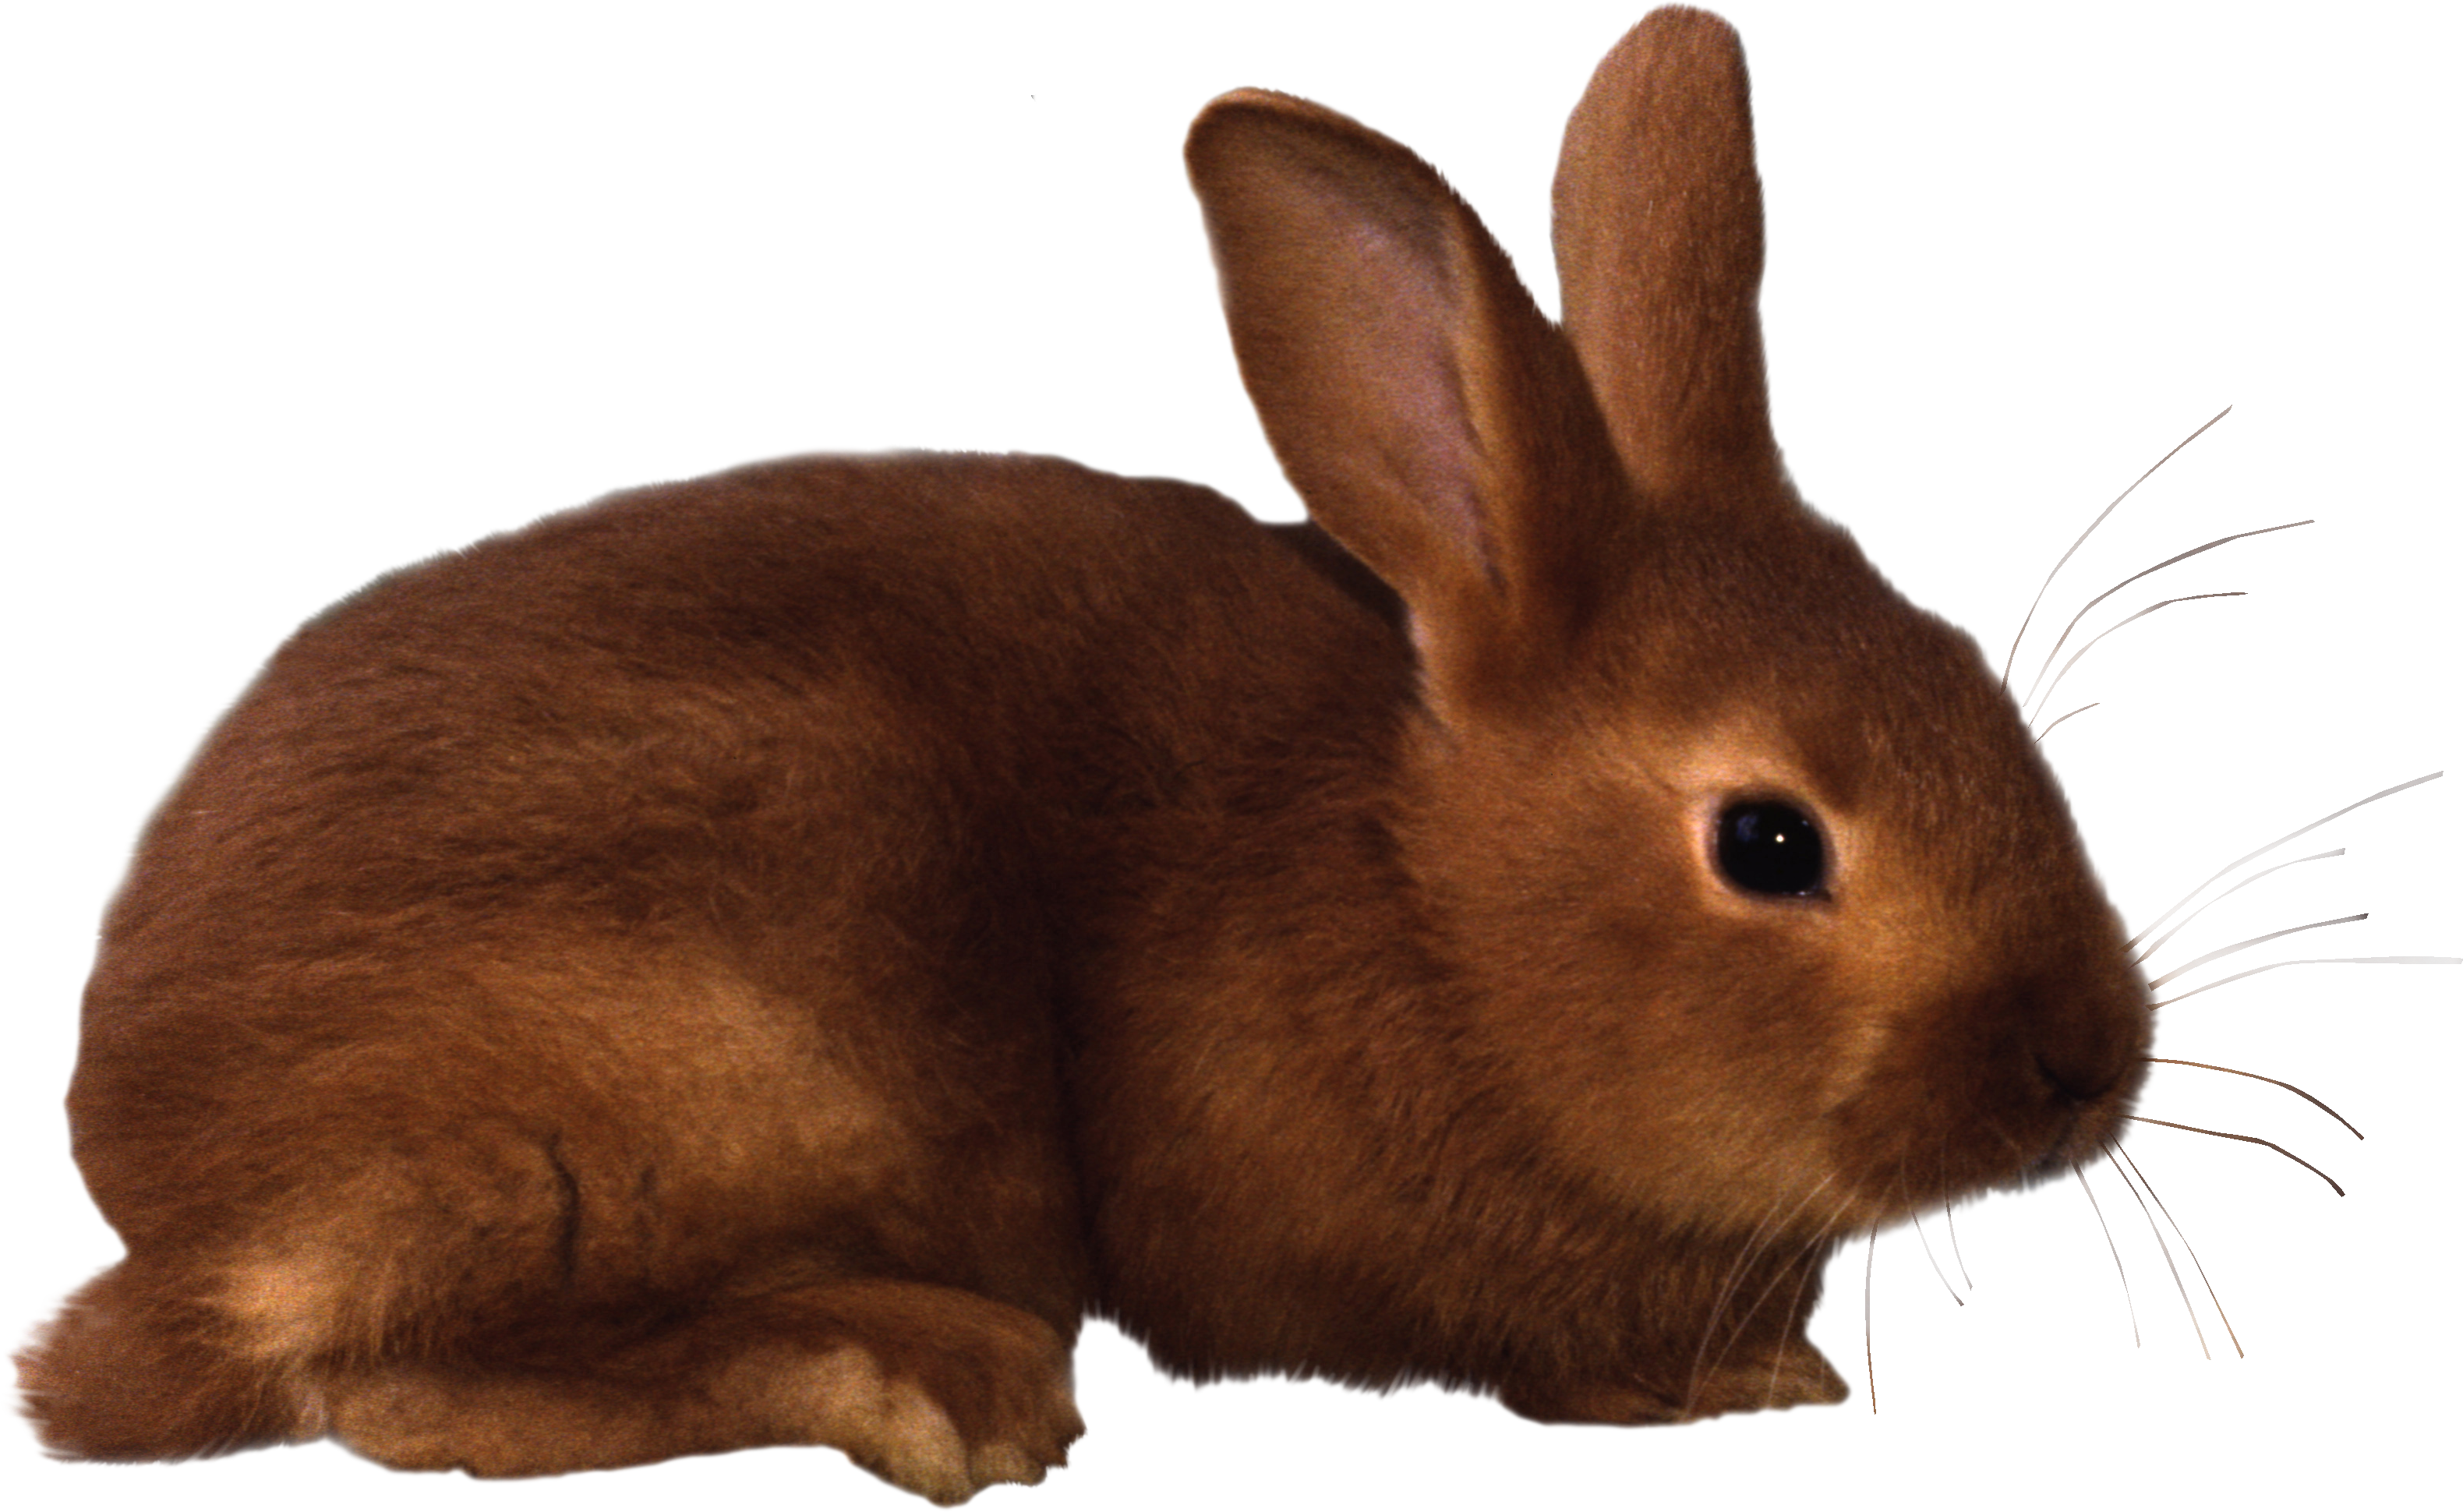 Rabbit png images free. Kittens clipart translucent